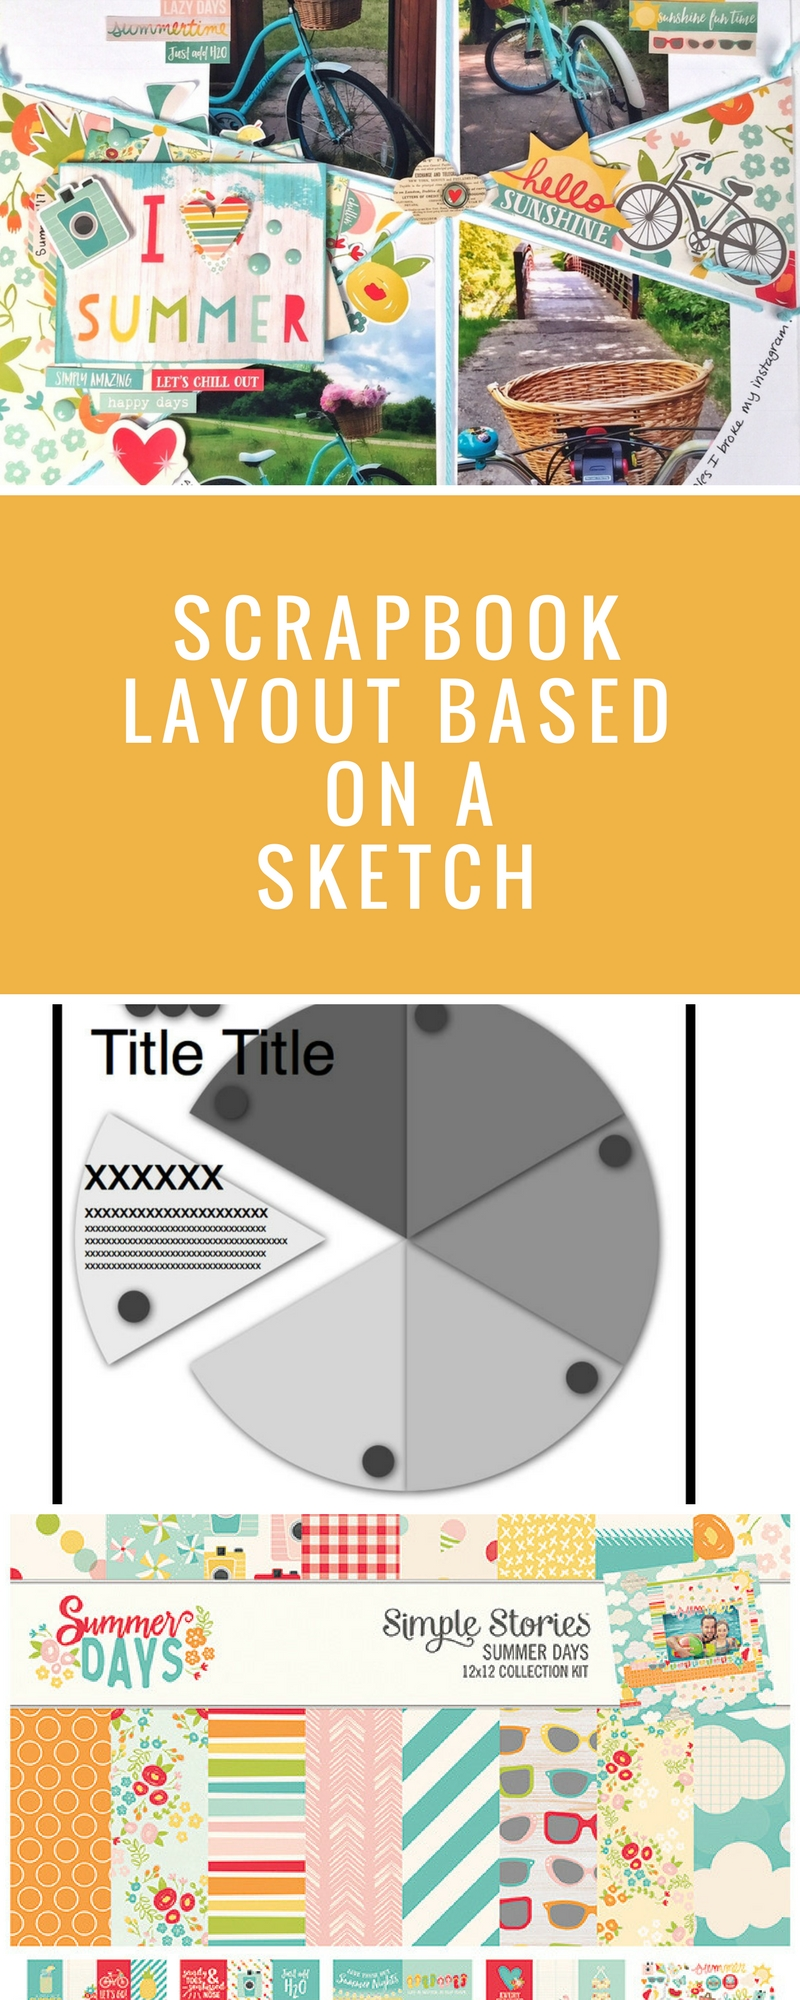 Scrapbooking Sketches | 12X12 Sketches | Join Our Monthly Sketch Challenge | Creative Scrapbooker Magazine